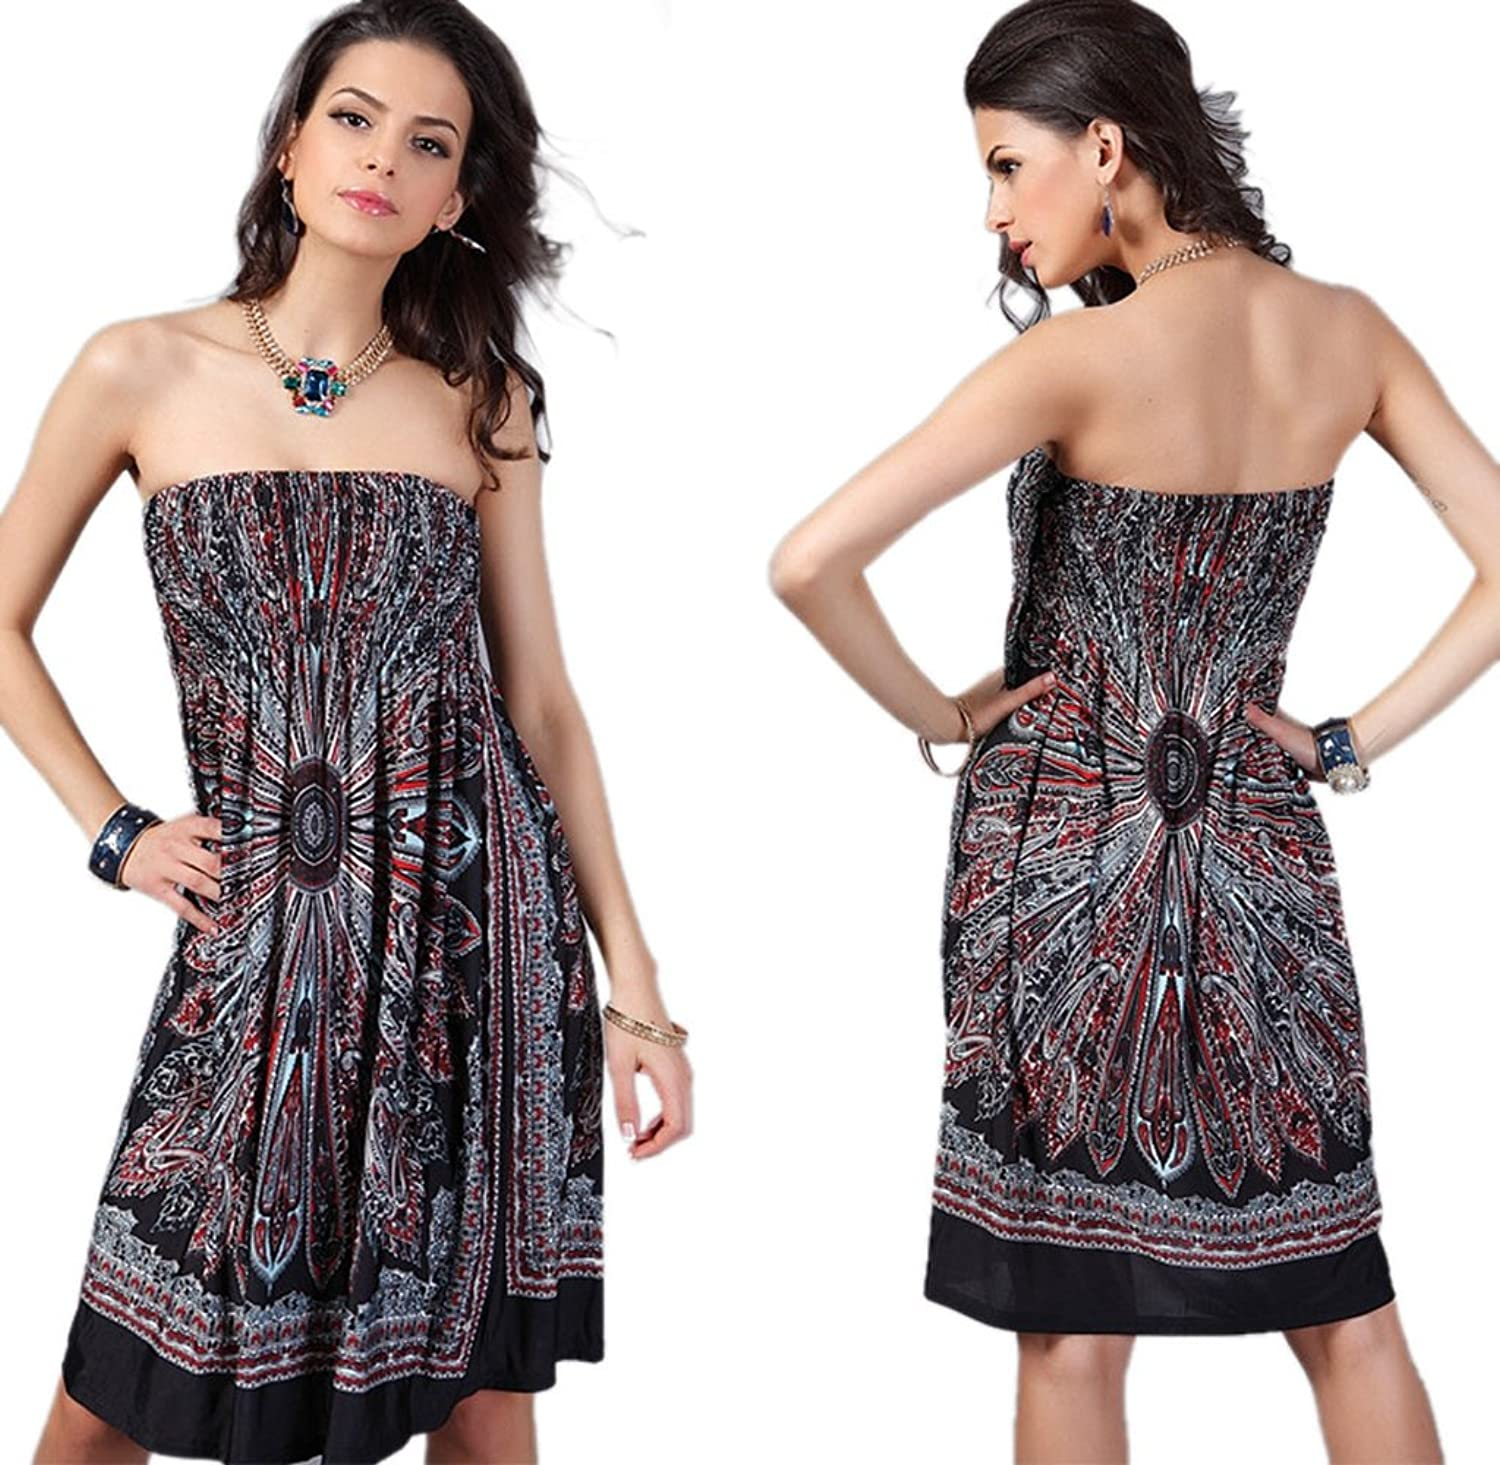 Amazon.com: Usstore Women Vintage Ropa Mujer Print Beach Knee-length Dresses: Clothing